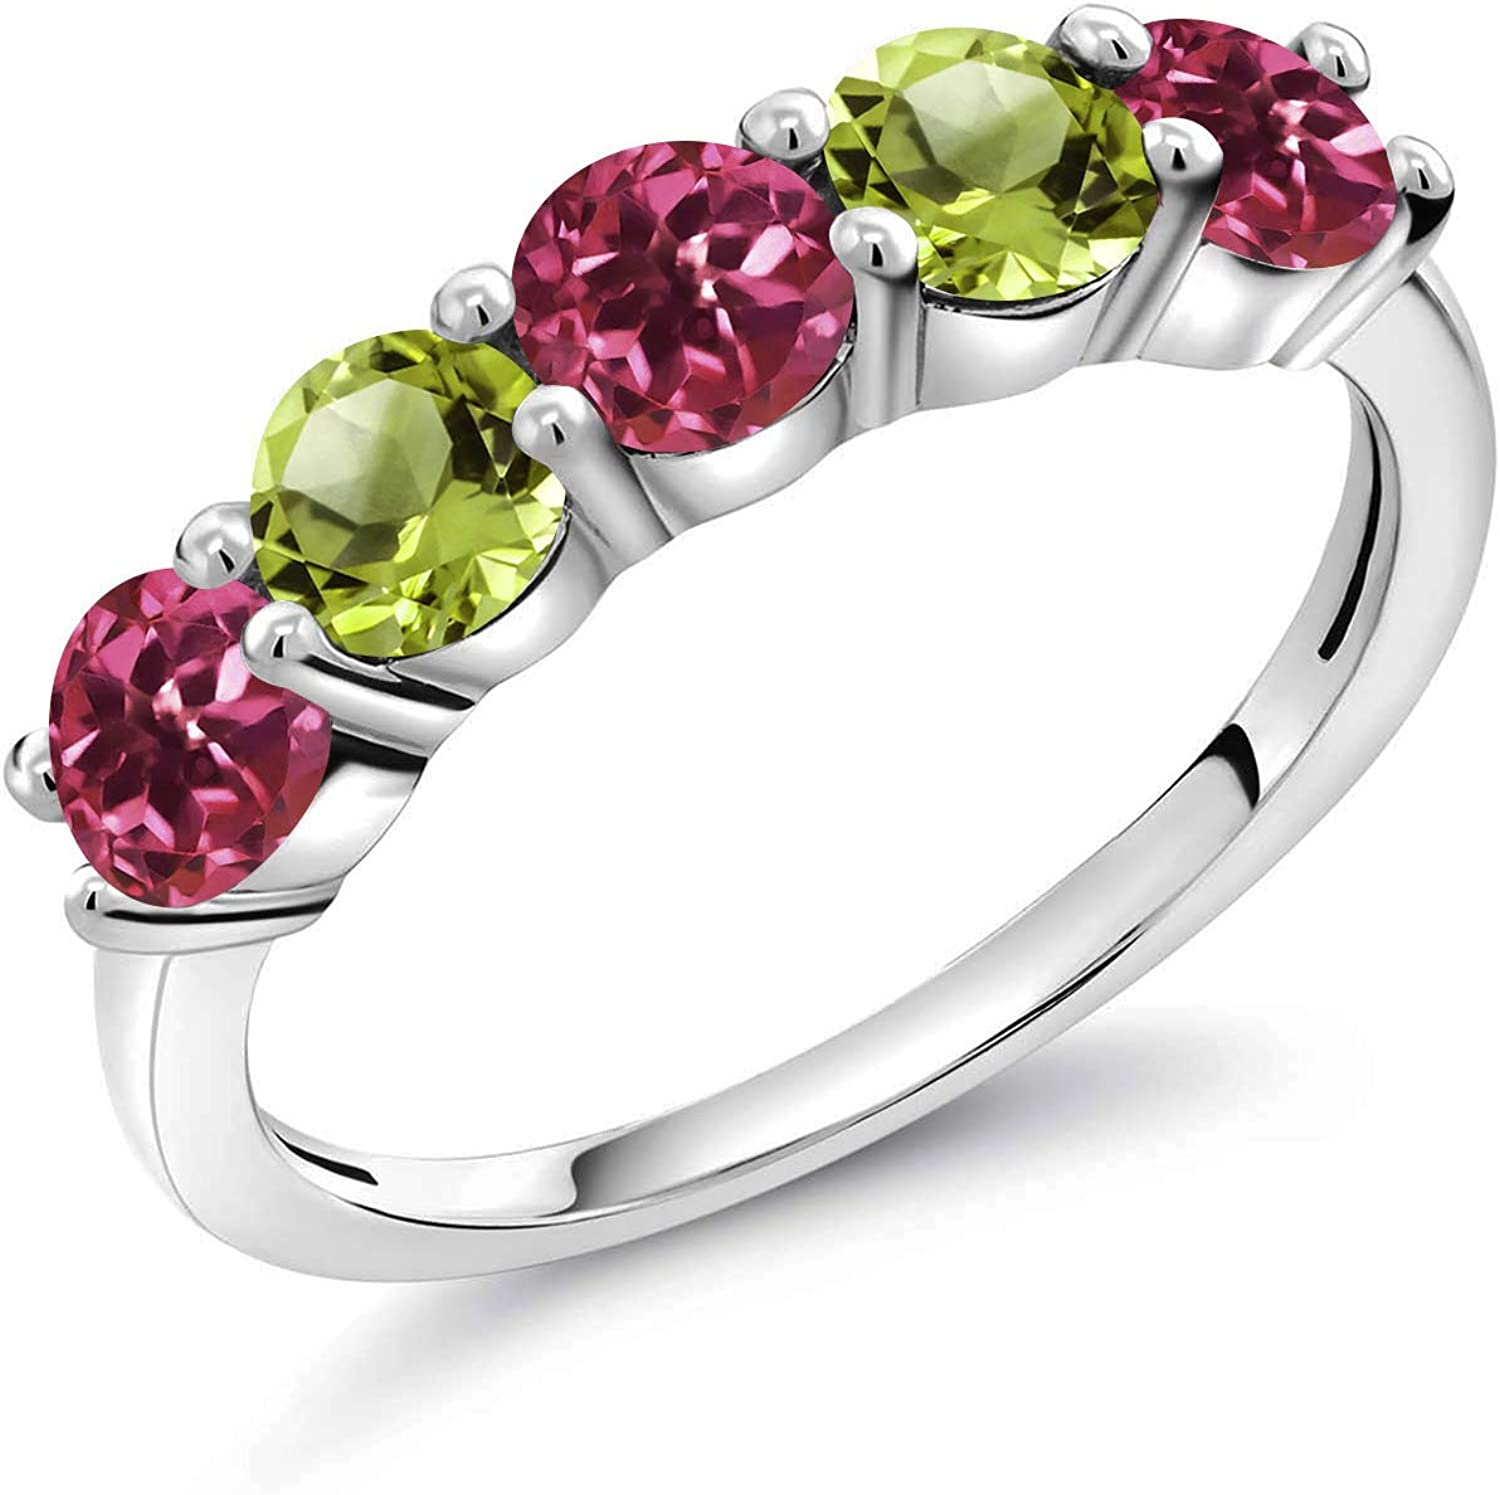 Gem Stone King 0.86 Ct Round Pink Tourmaline Green Peridot 925 Sterling Silver Ring